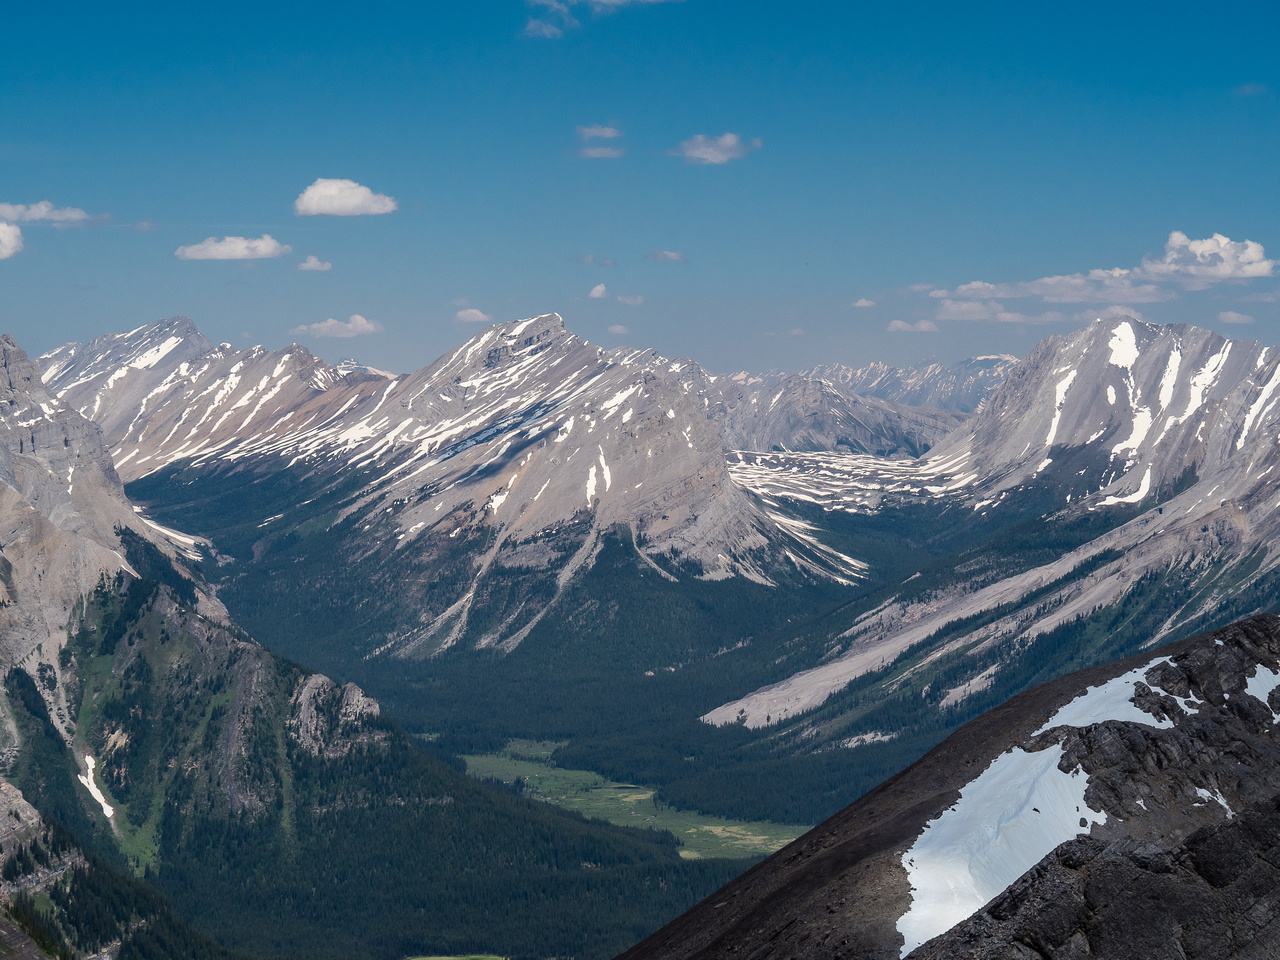 A wider shot toward Mount Mercer and Allenby showing Allenby Pass at right and Assiniboine Pass at left.